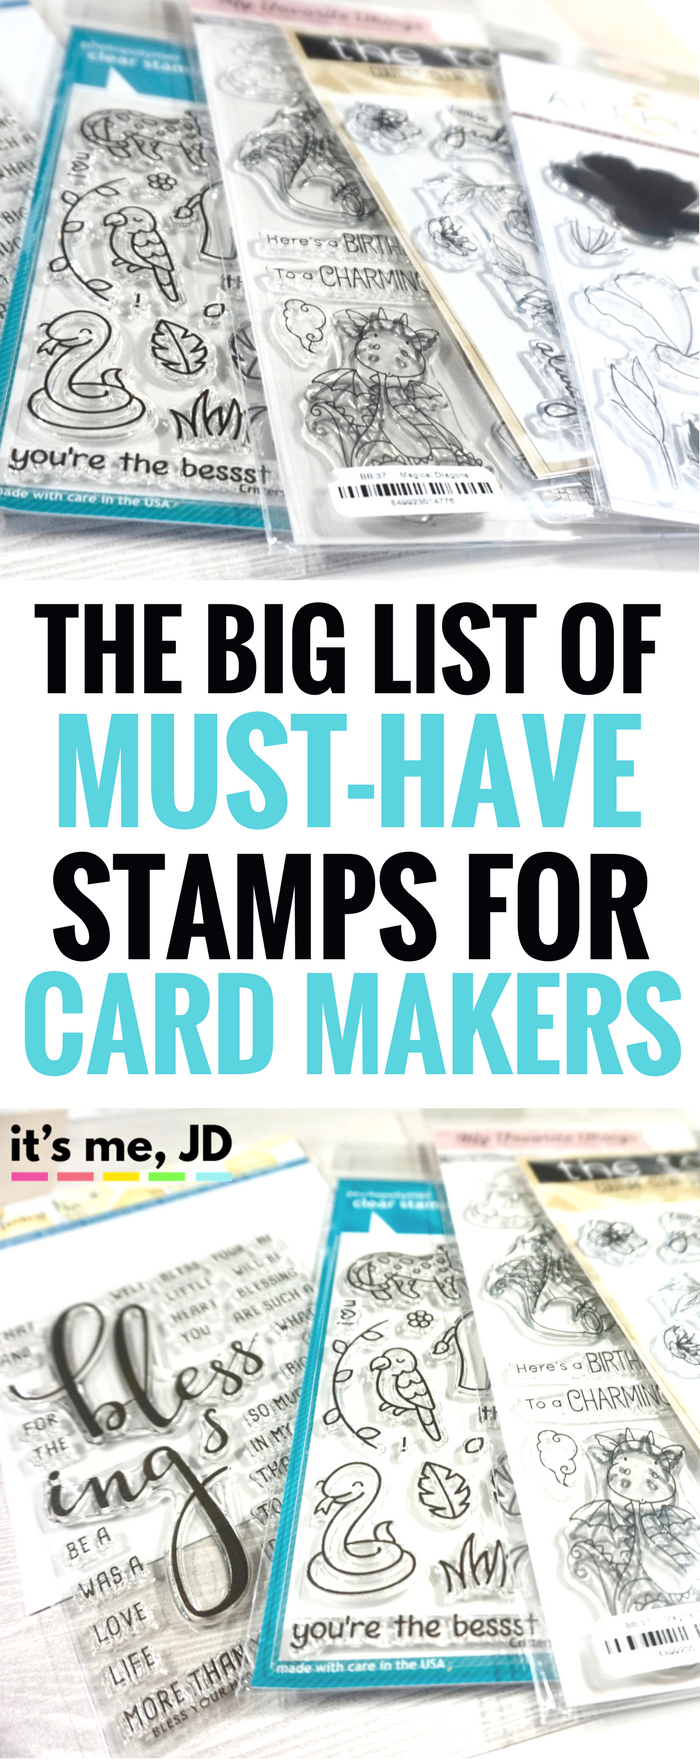 Big List of Must-Have Stamps for Card Makers, craft, papercraft